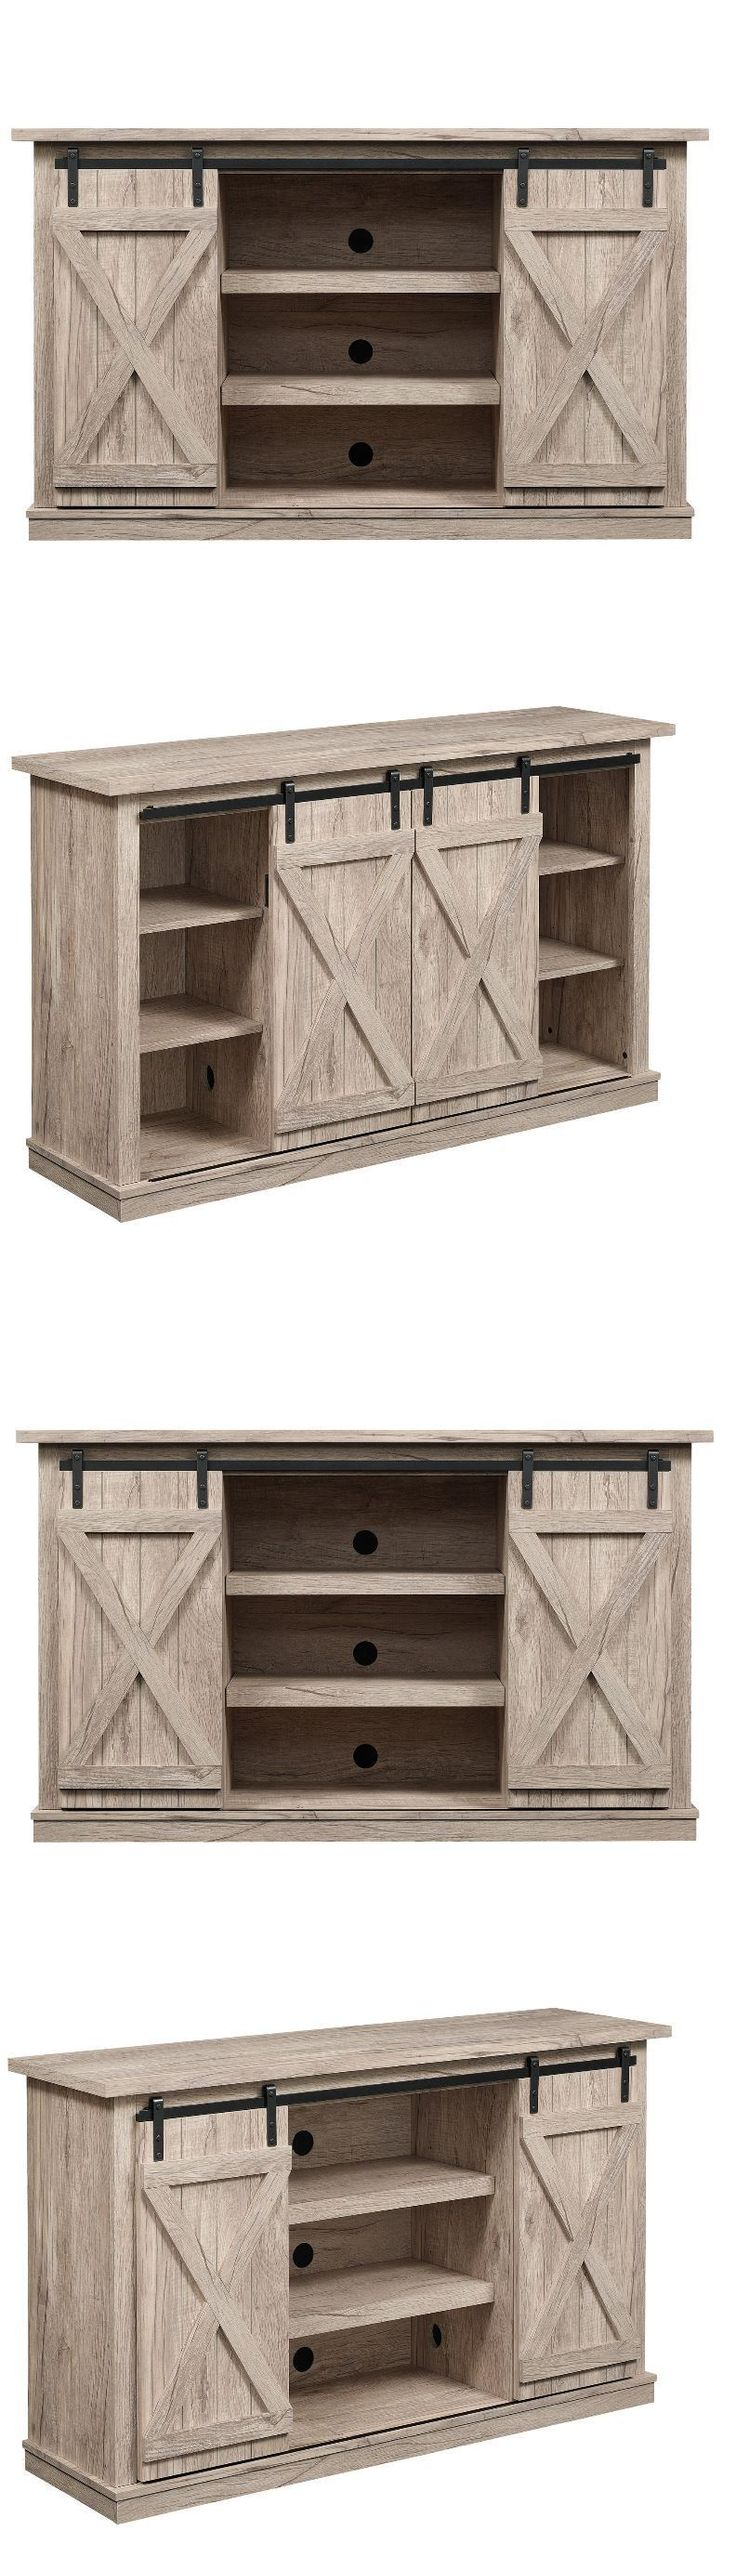 Wood swivel desk chair laquered finish warms amp padded seat ebay - Entertainment Units Tv Stands 20488 Rustic Tv Stand Console Up To 60 Barn Door Wood